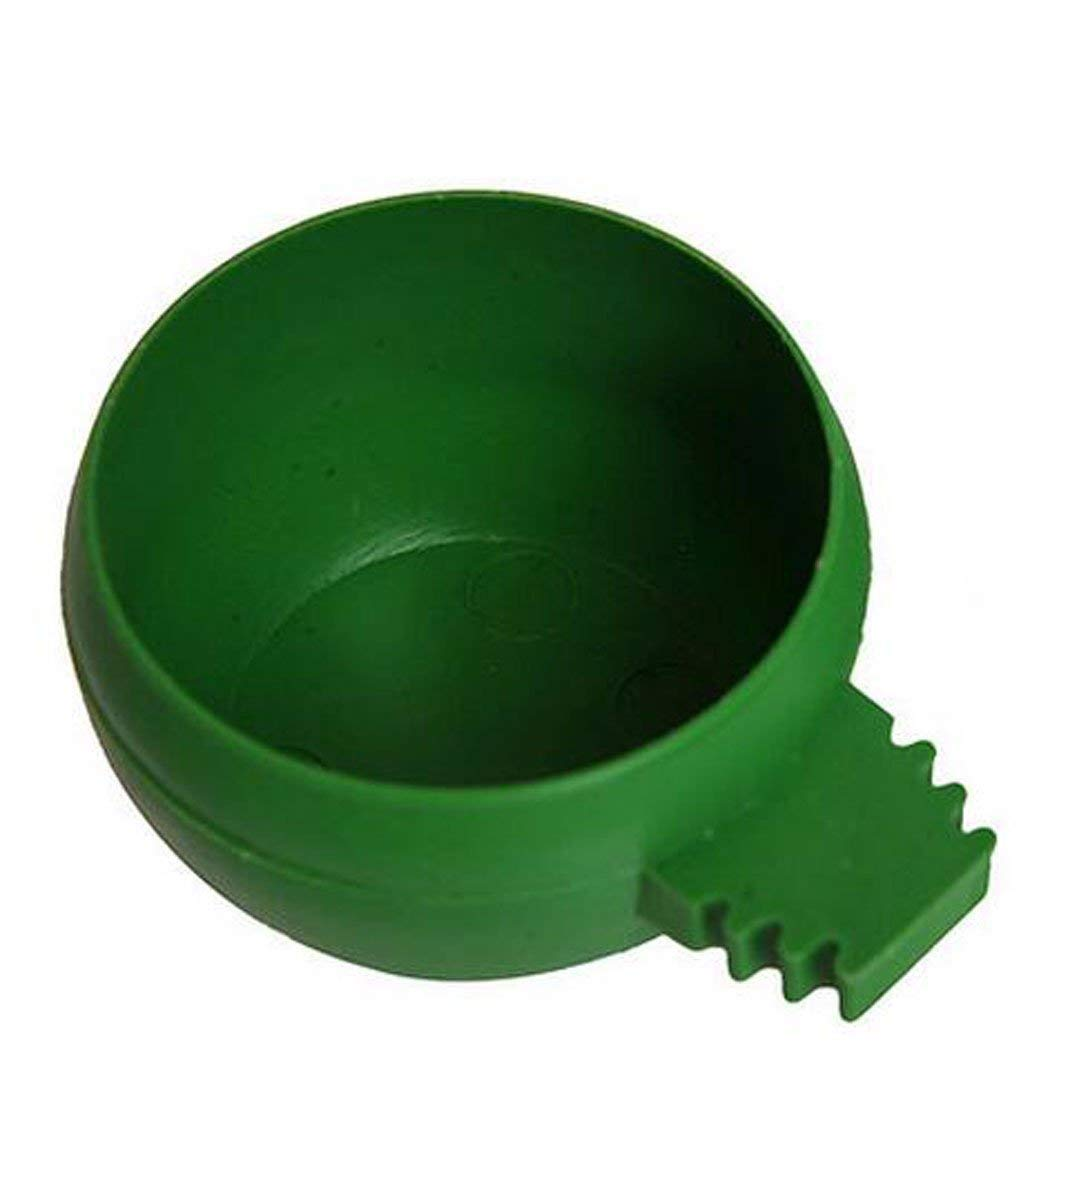 OUUD Plastic Bird Parrot Pigeons Food Water Feeder Bowl -2.1 Inches,Green